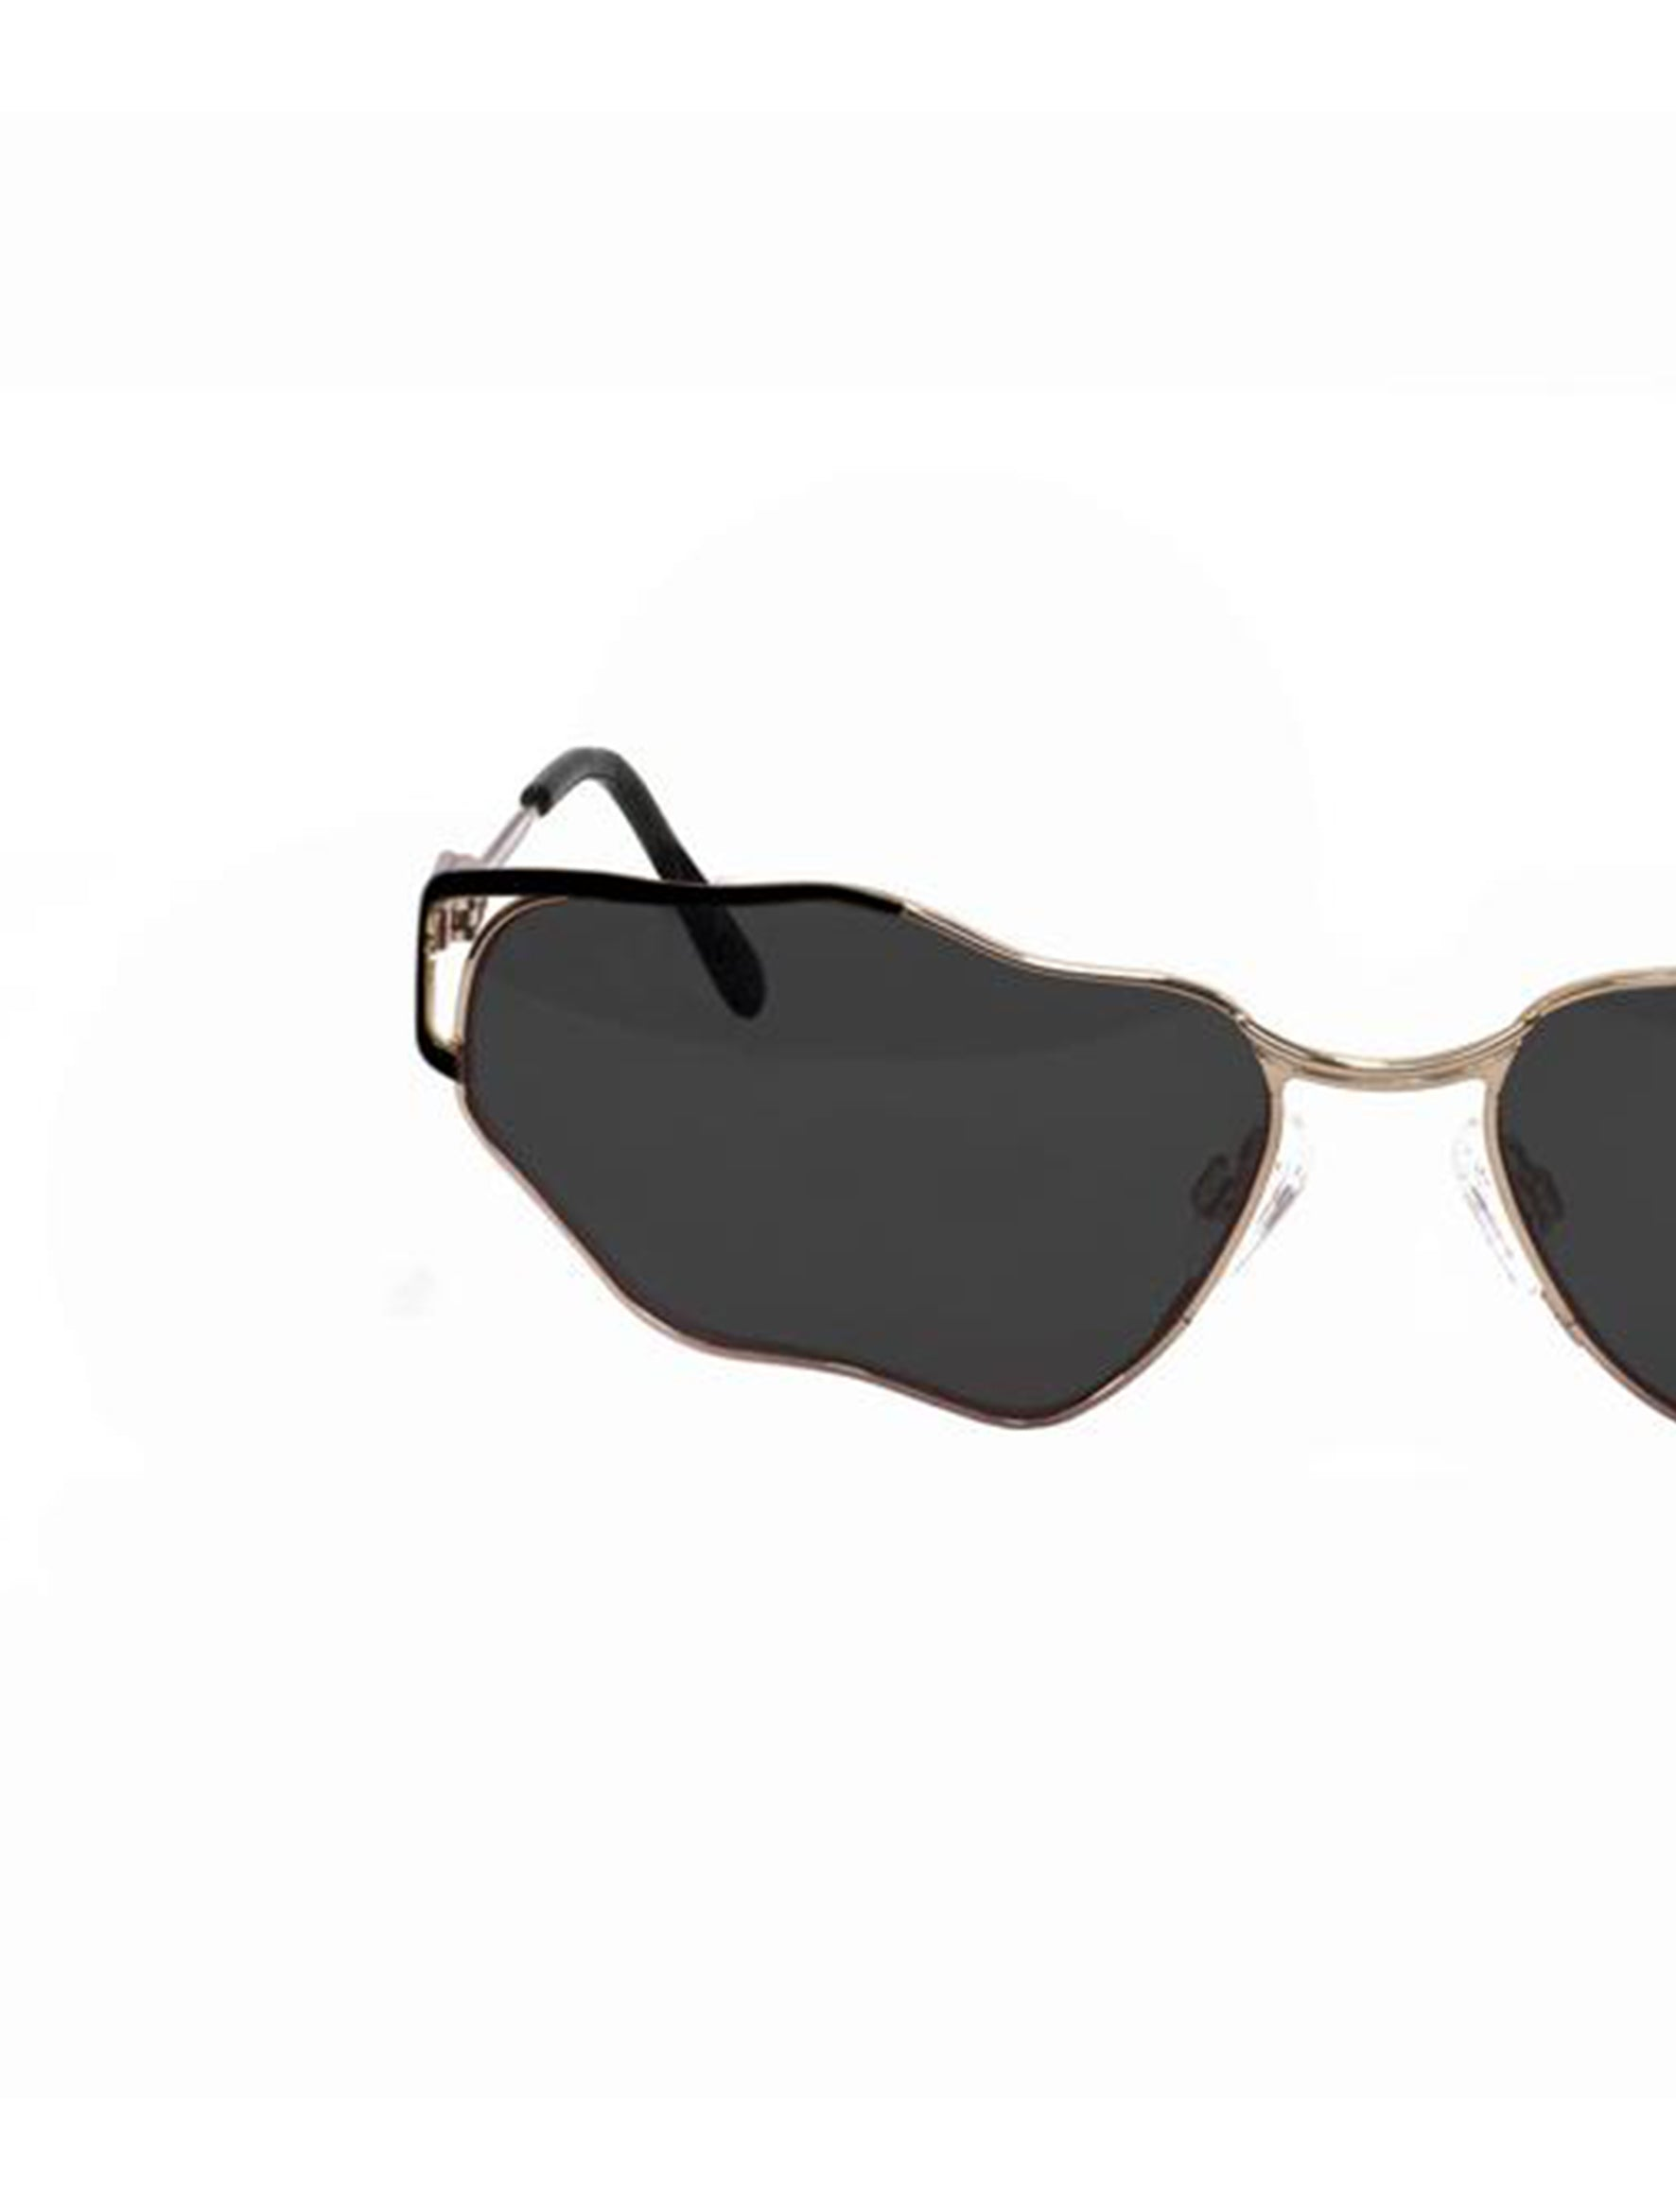 Limited Edition Black Sunglasses